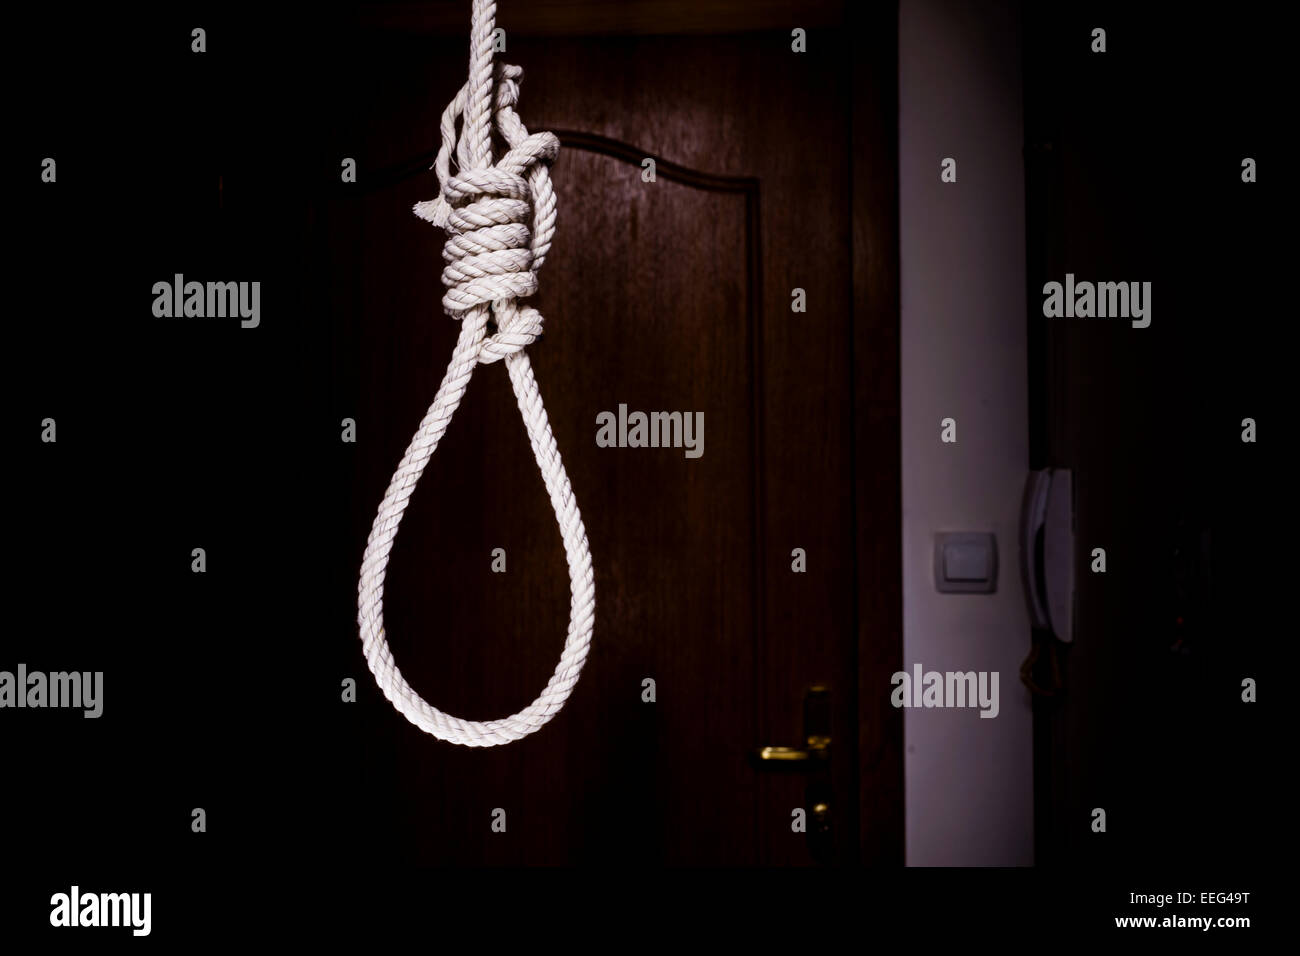 gallows in the dark house - Stock Image